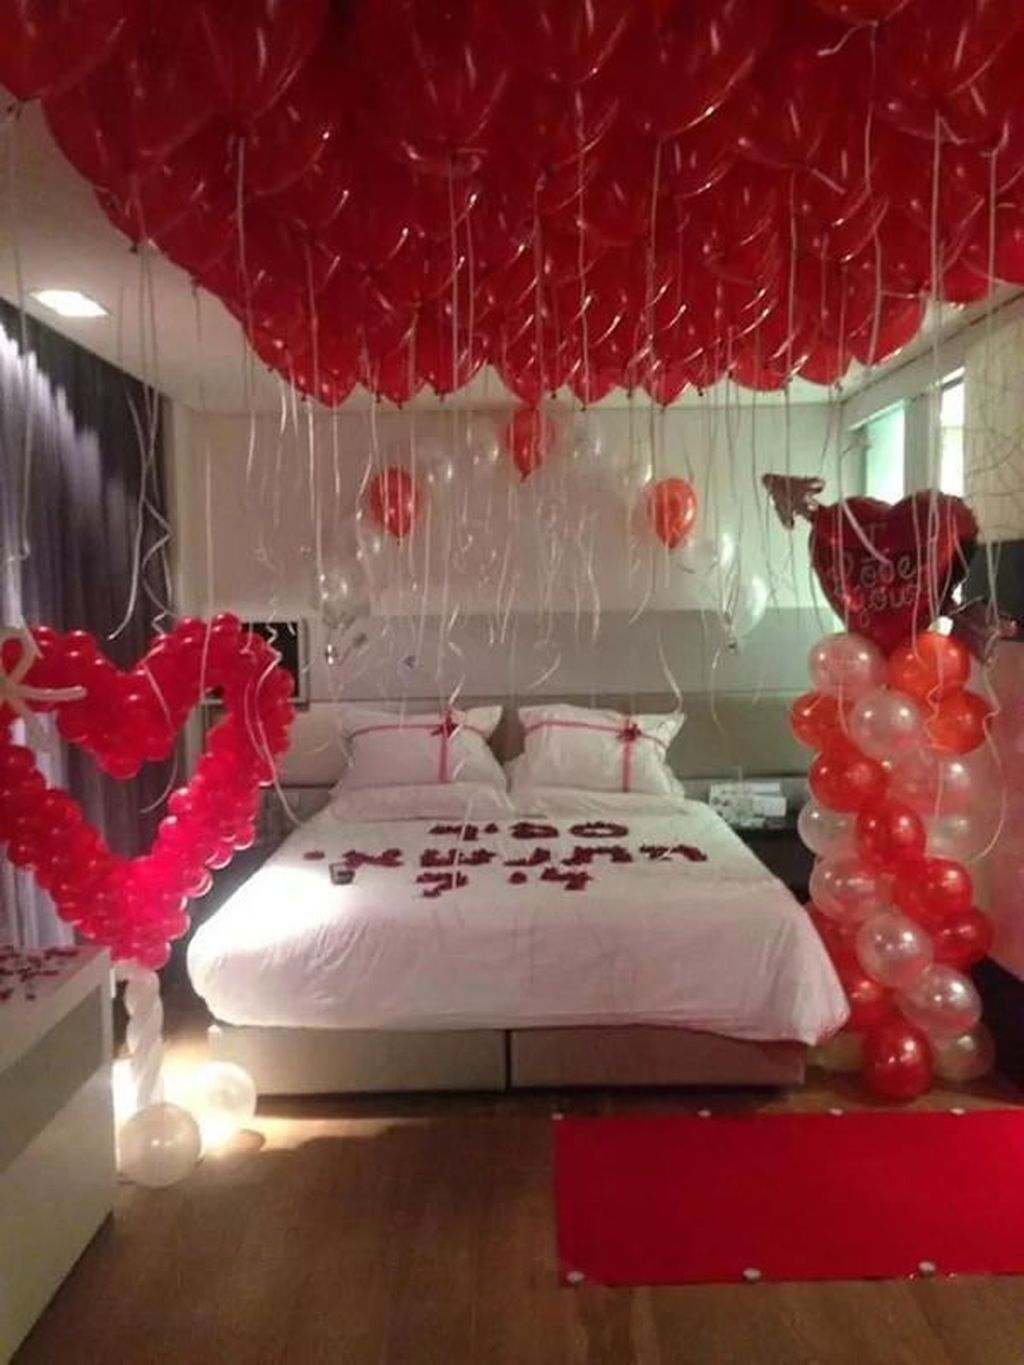 Romantic bedroom decorating ideas for valentines day - Cool 34 Romantic Bedroom Decorating Ideas For Valentines Day More At Http